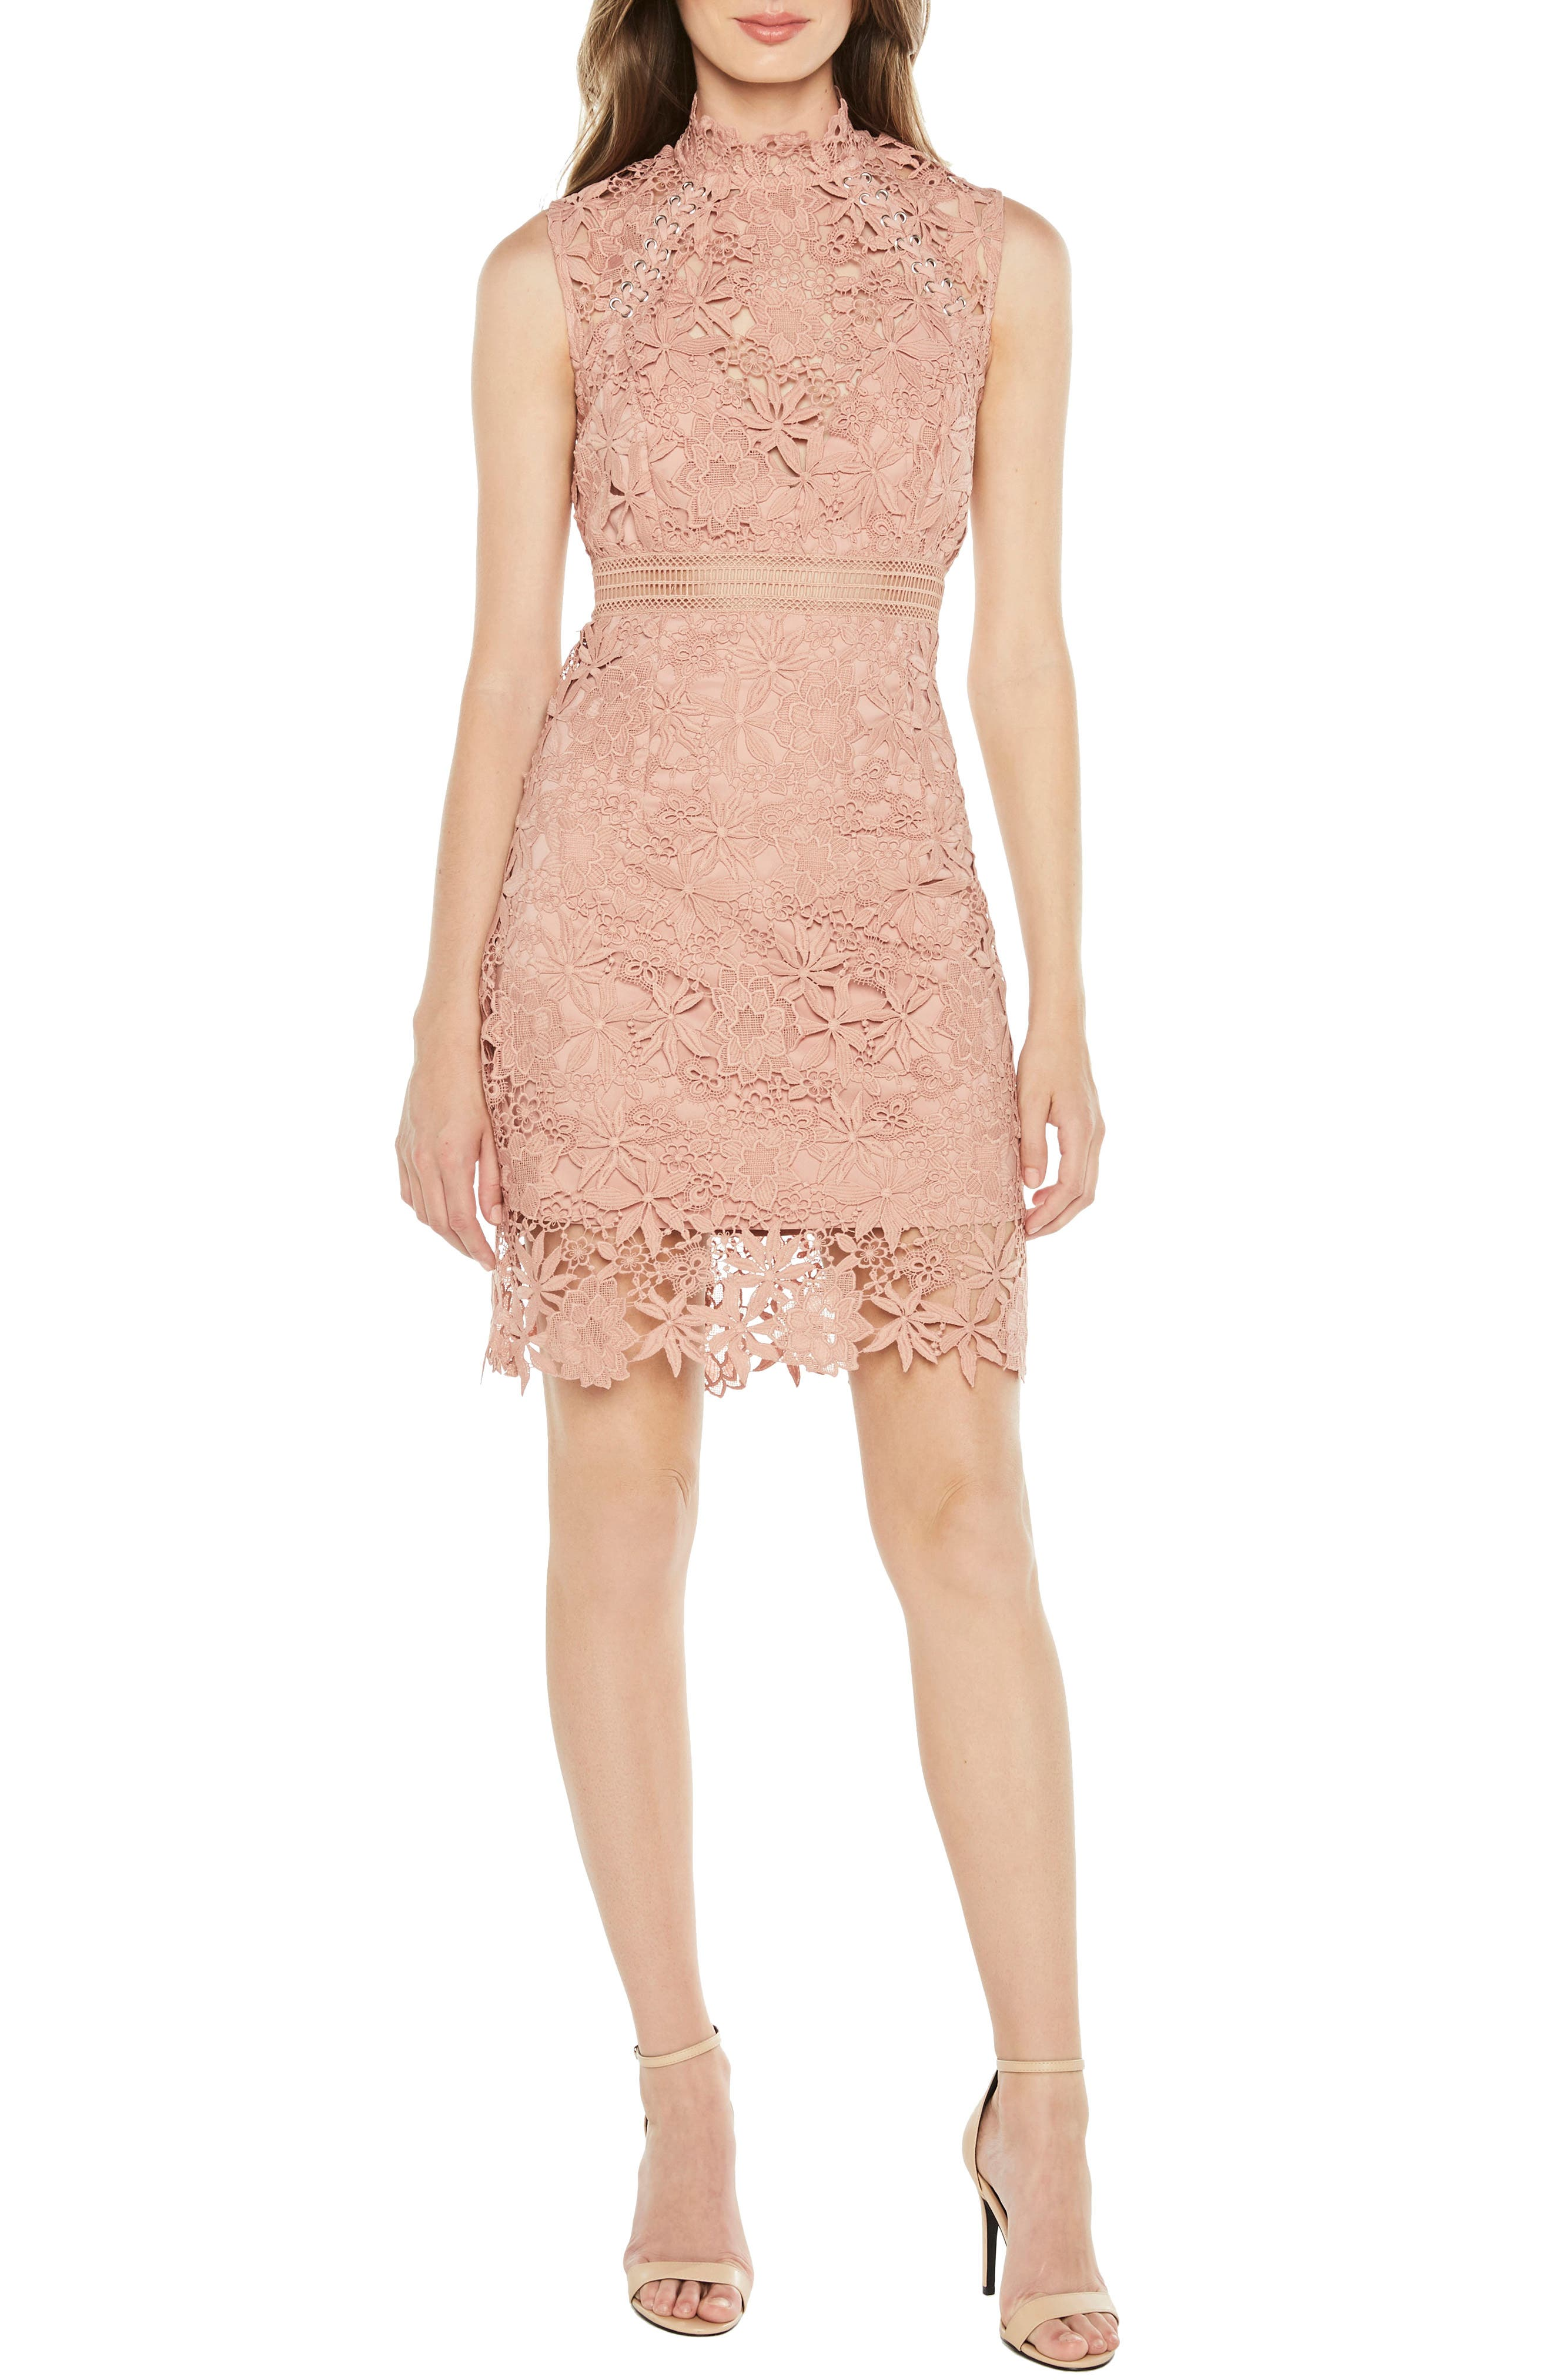 Classy sexy cocktail wedding guest dress